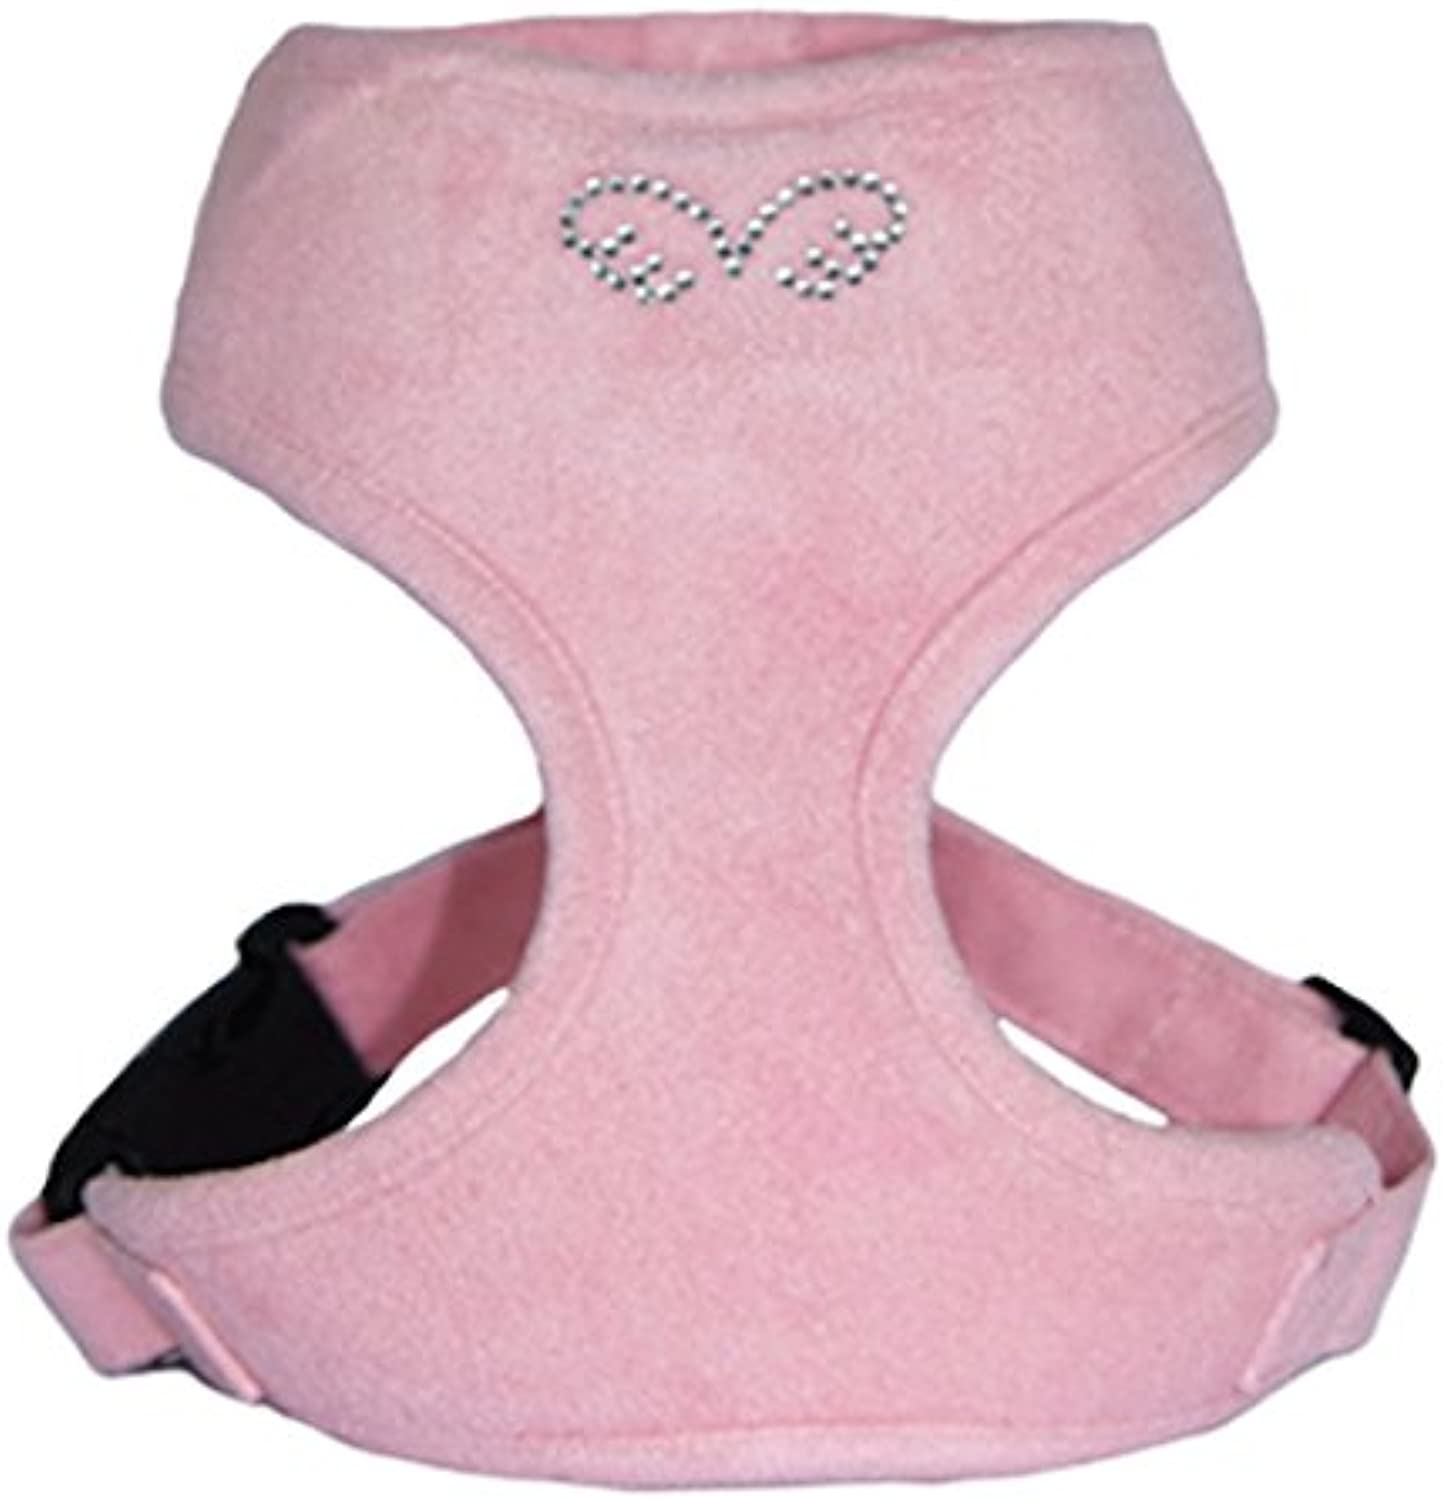 Puppy Angel Du Angione Suede Harness, Small, Baby Pink